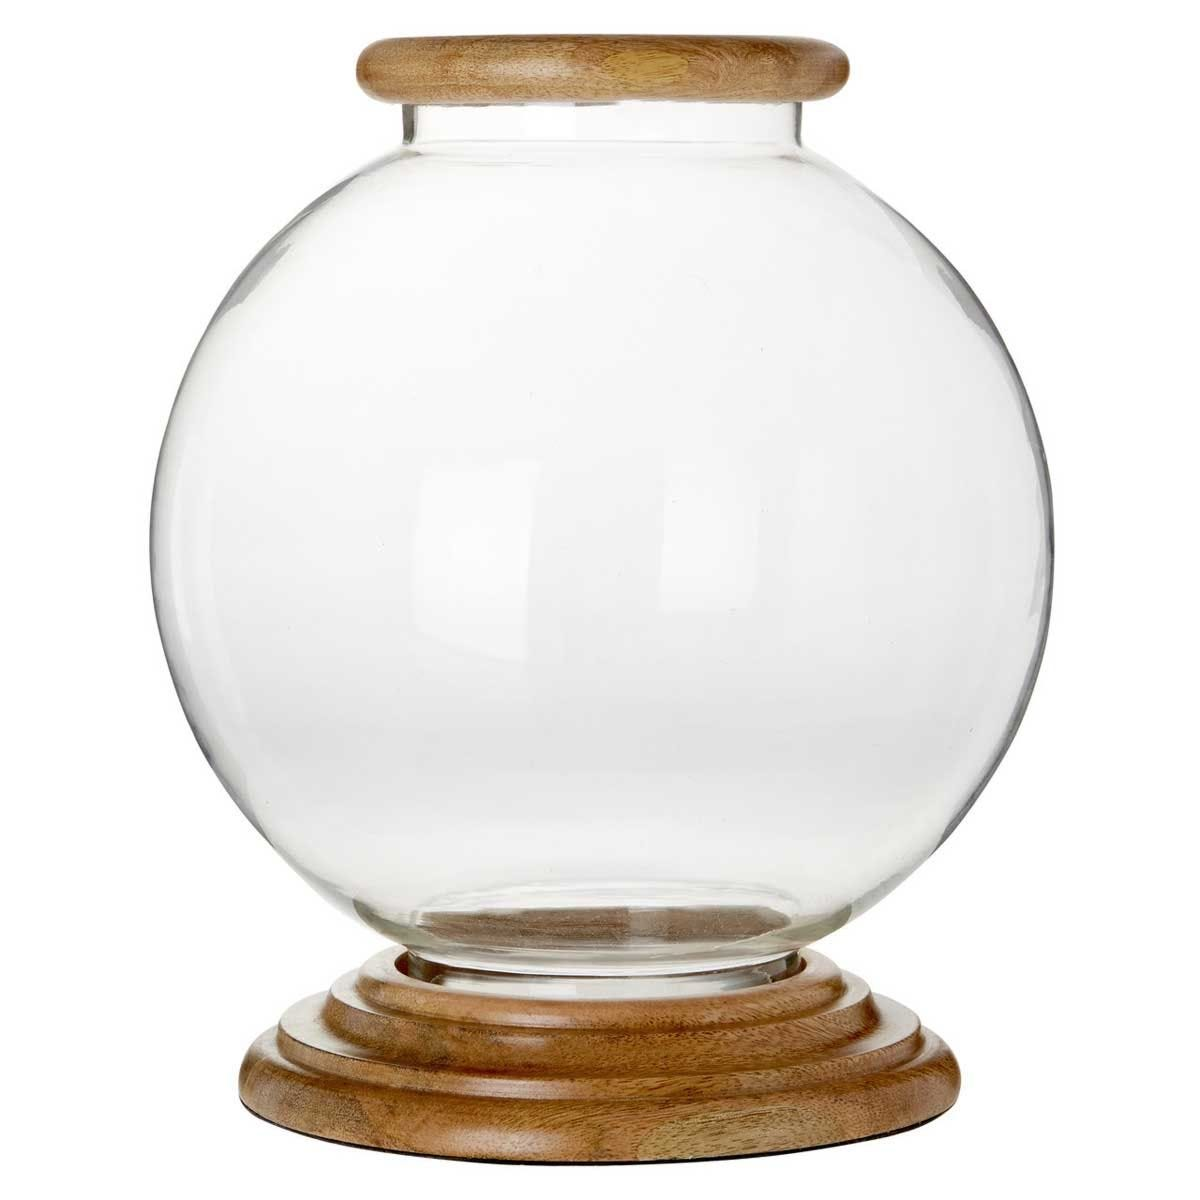 Premier Housewares Hampstead Hurricane Round Candle Holder - Large